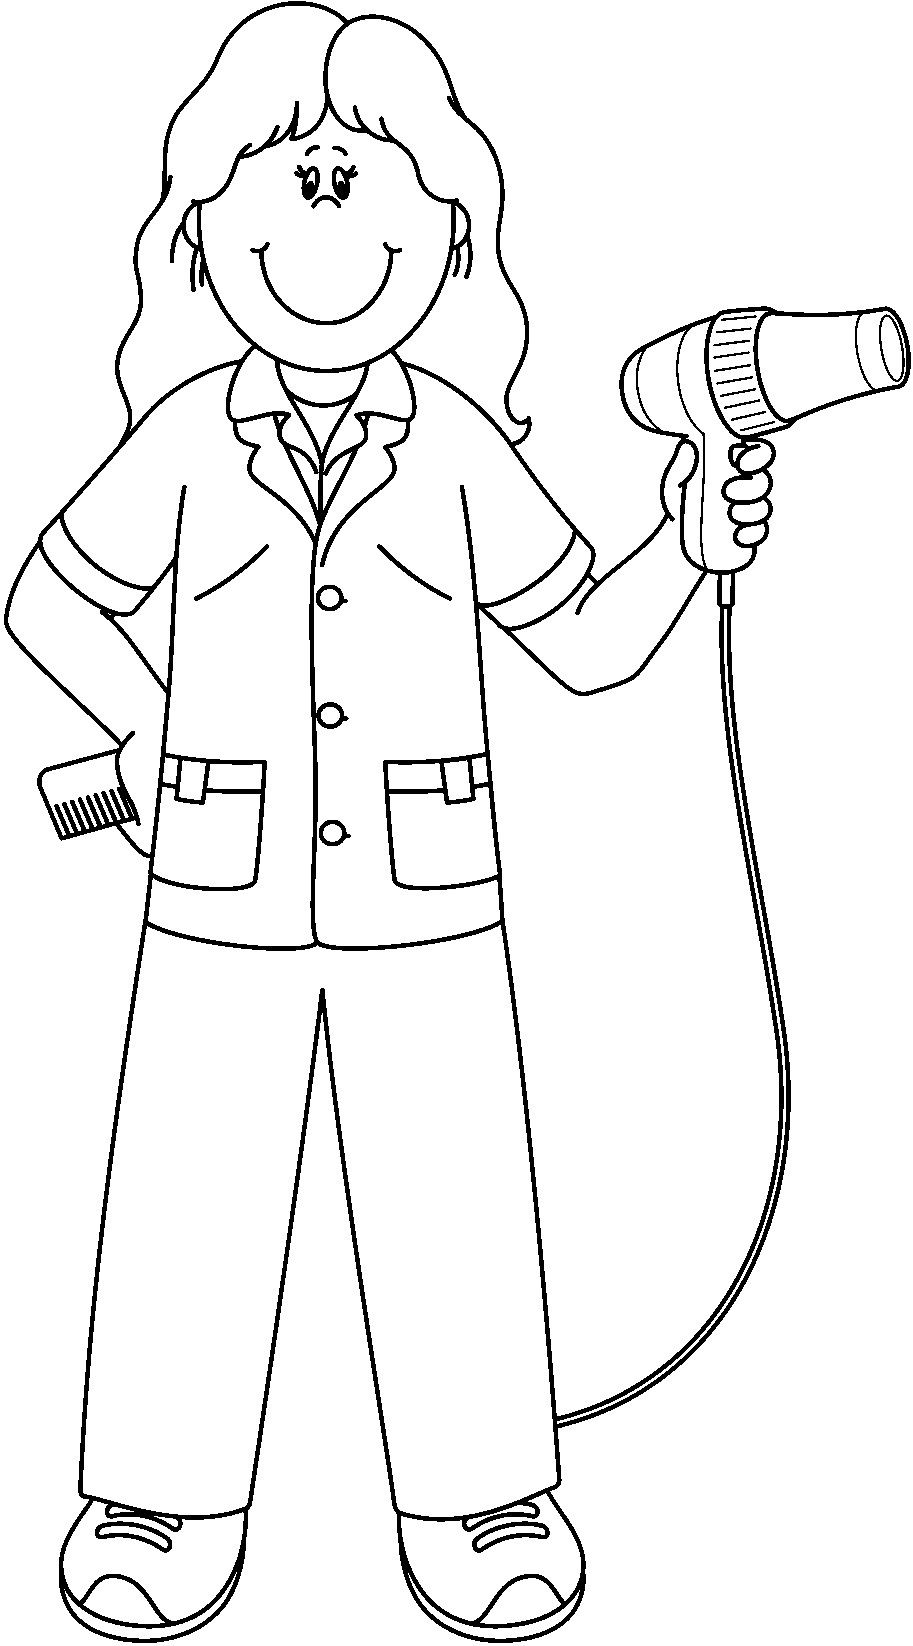 Printable Community Helper Coloring Pages Coloring Me Community Helpers Community Helper Community Helpers Worksheets